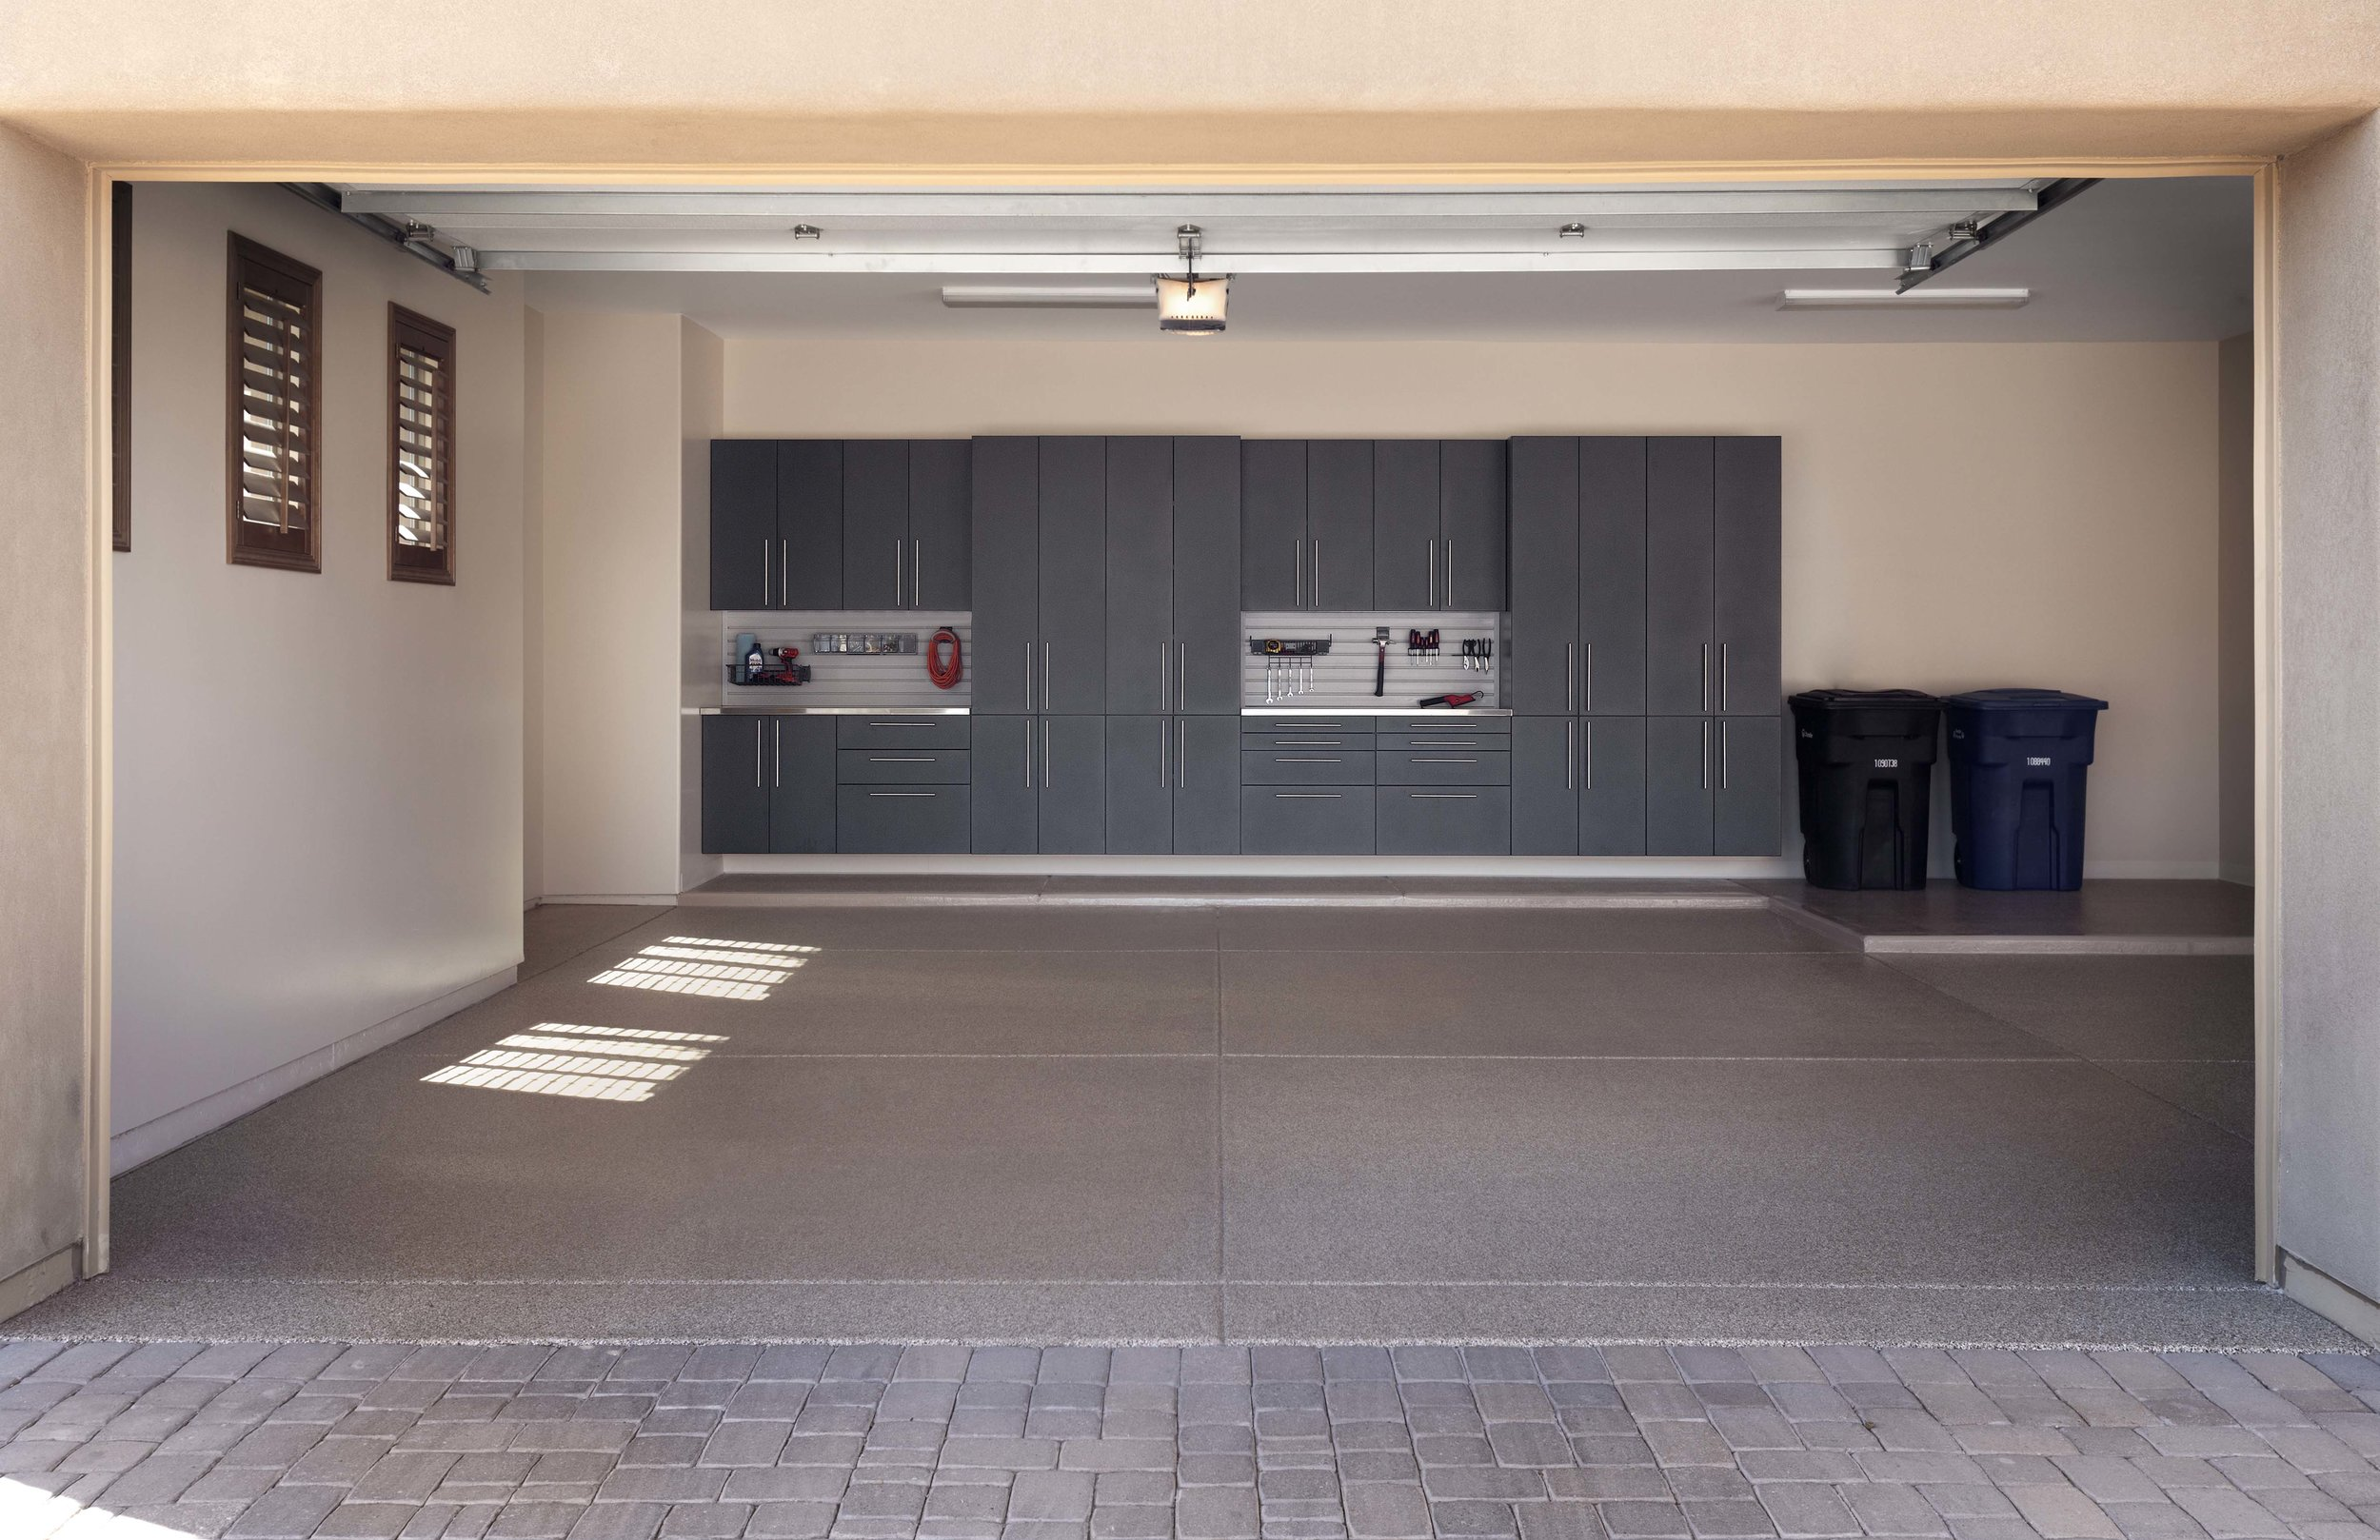 Granite Cabinets with Double Stainless Workbenh-Sedona 8th Flr-From Driveway-Feb 2013.jpg